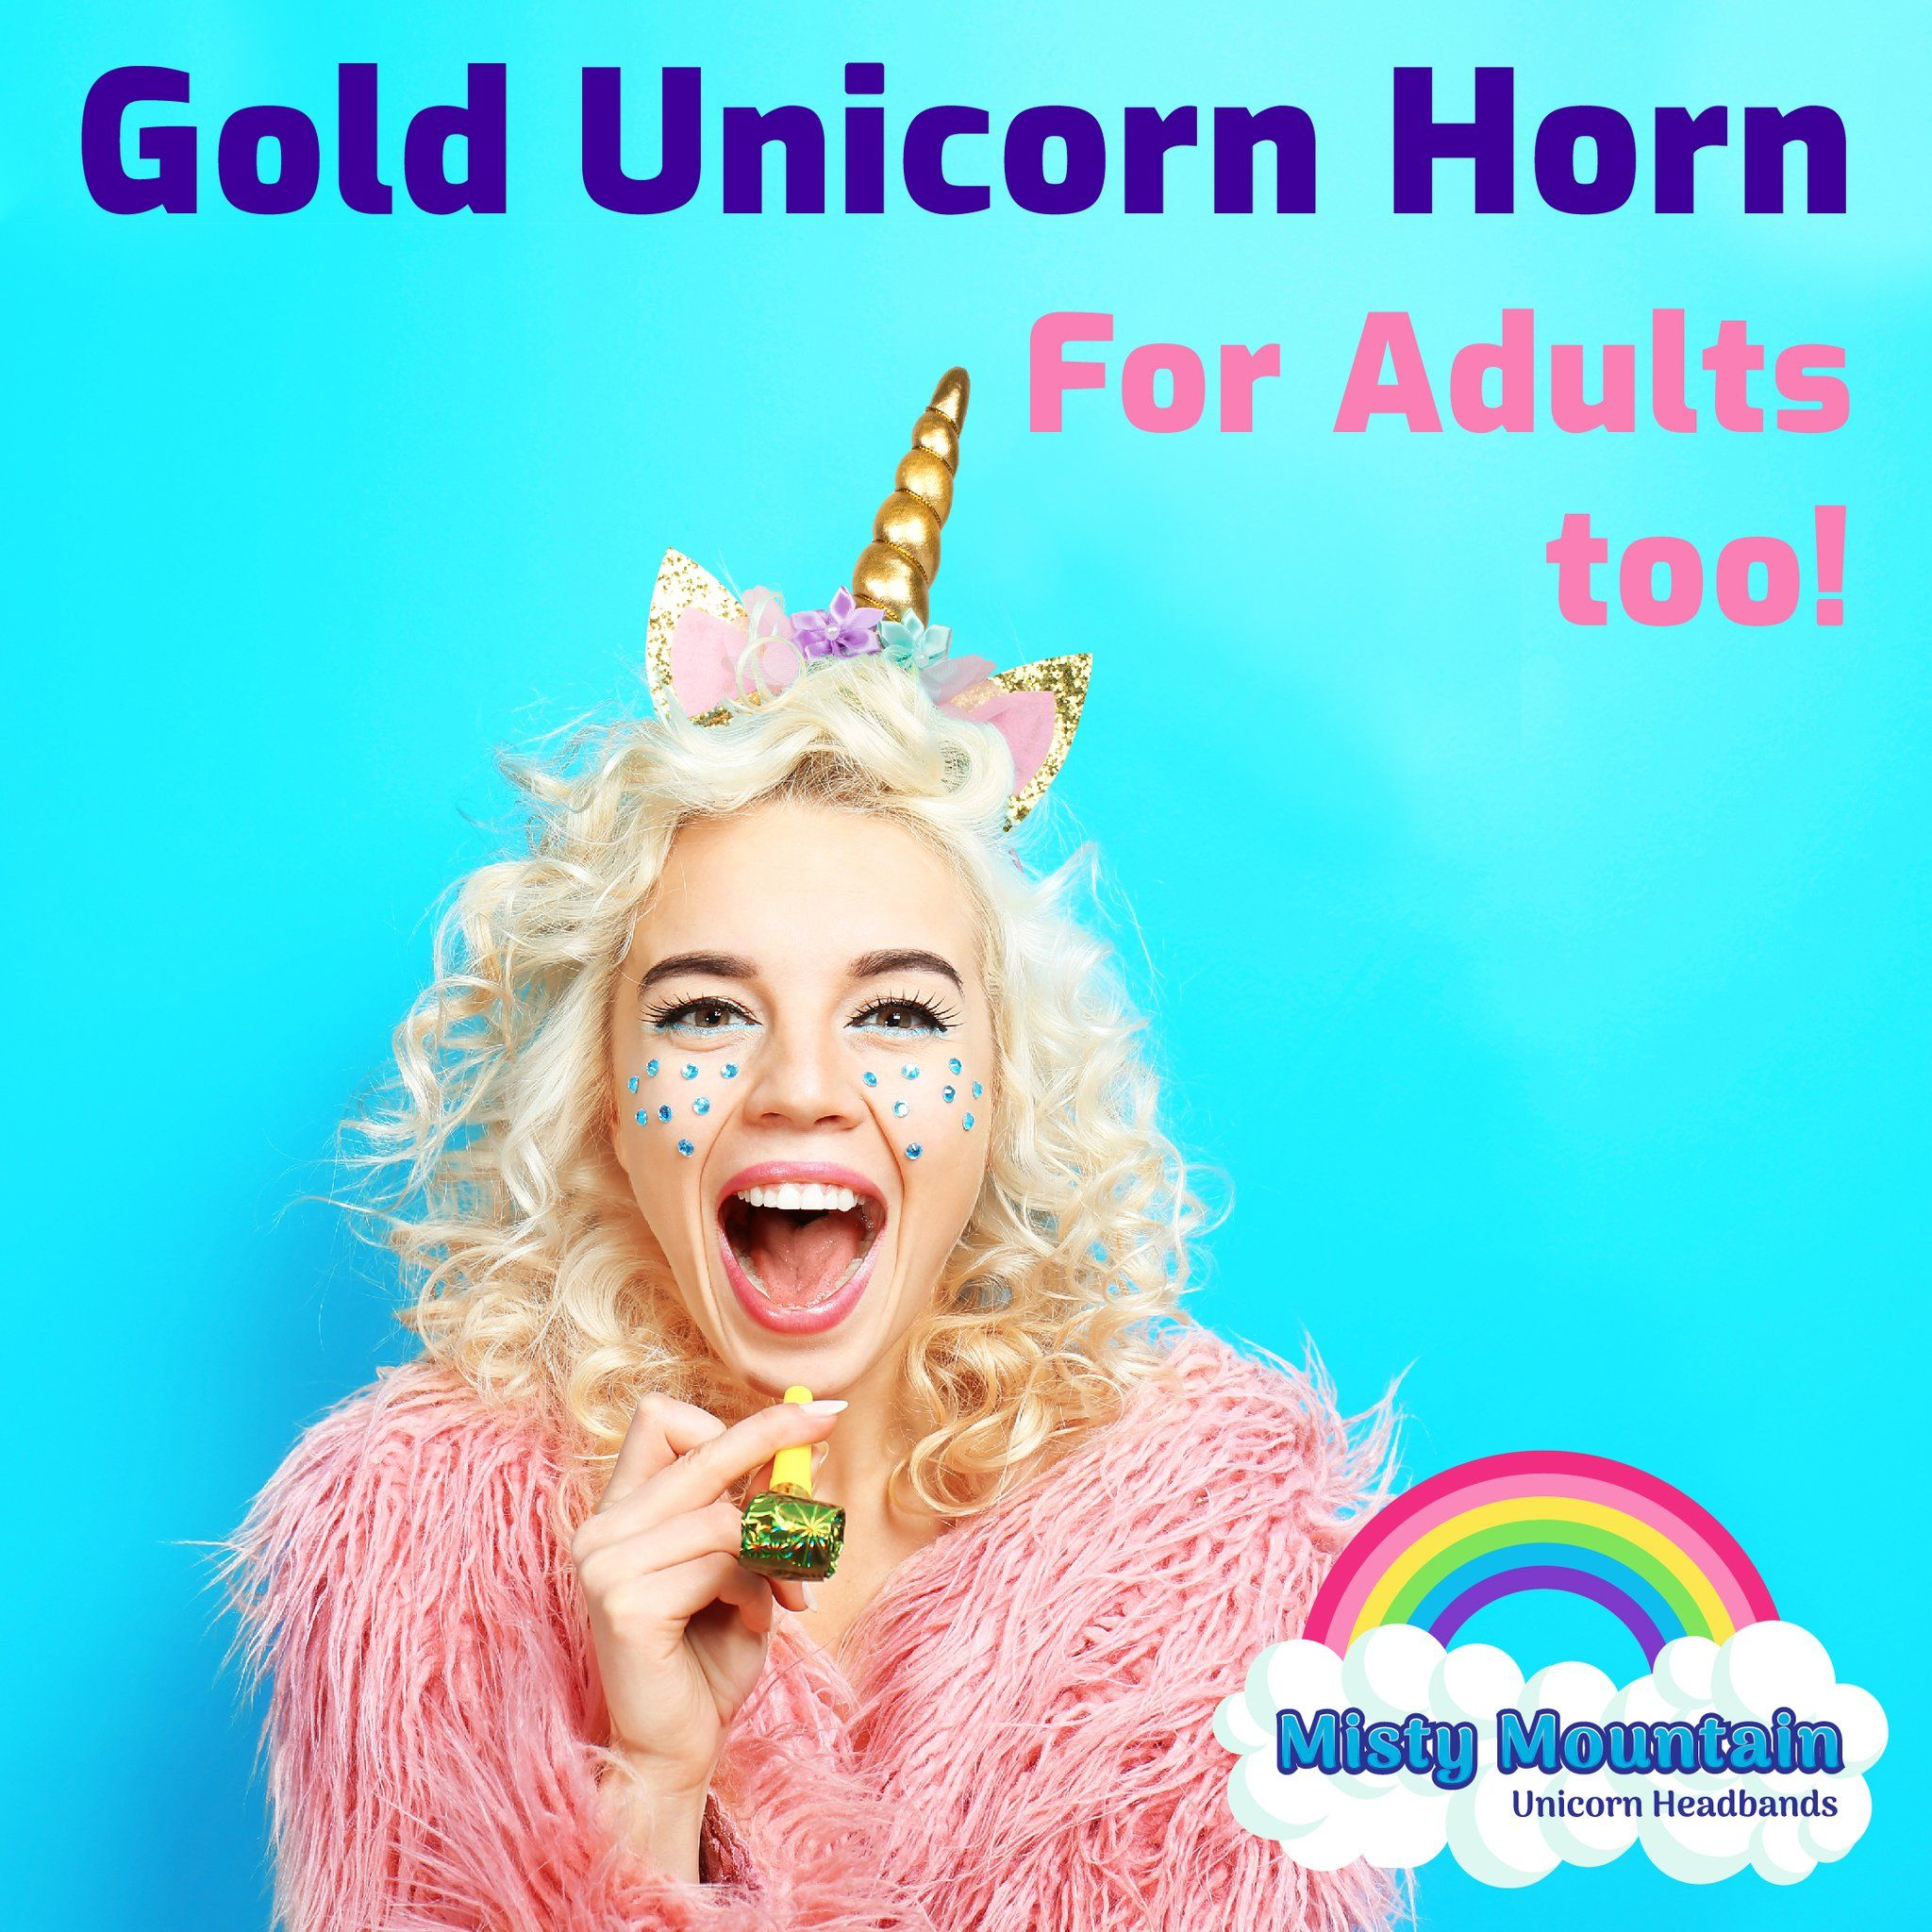 Unicorn Headband Party Supplies for Party Favors or Unicorn Costume (6 pack)